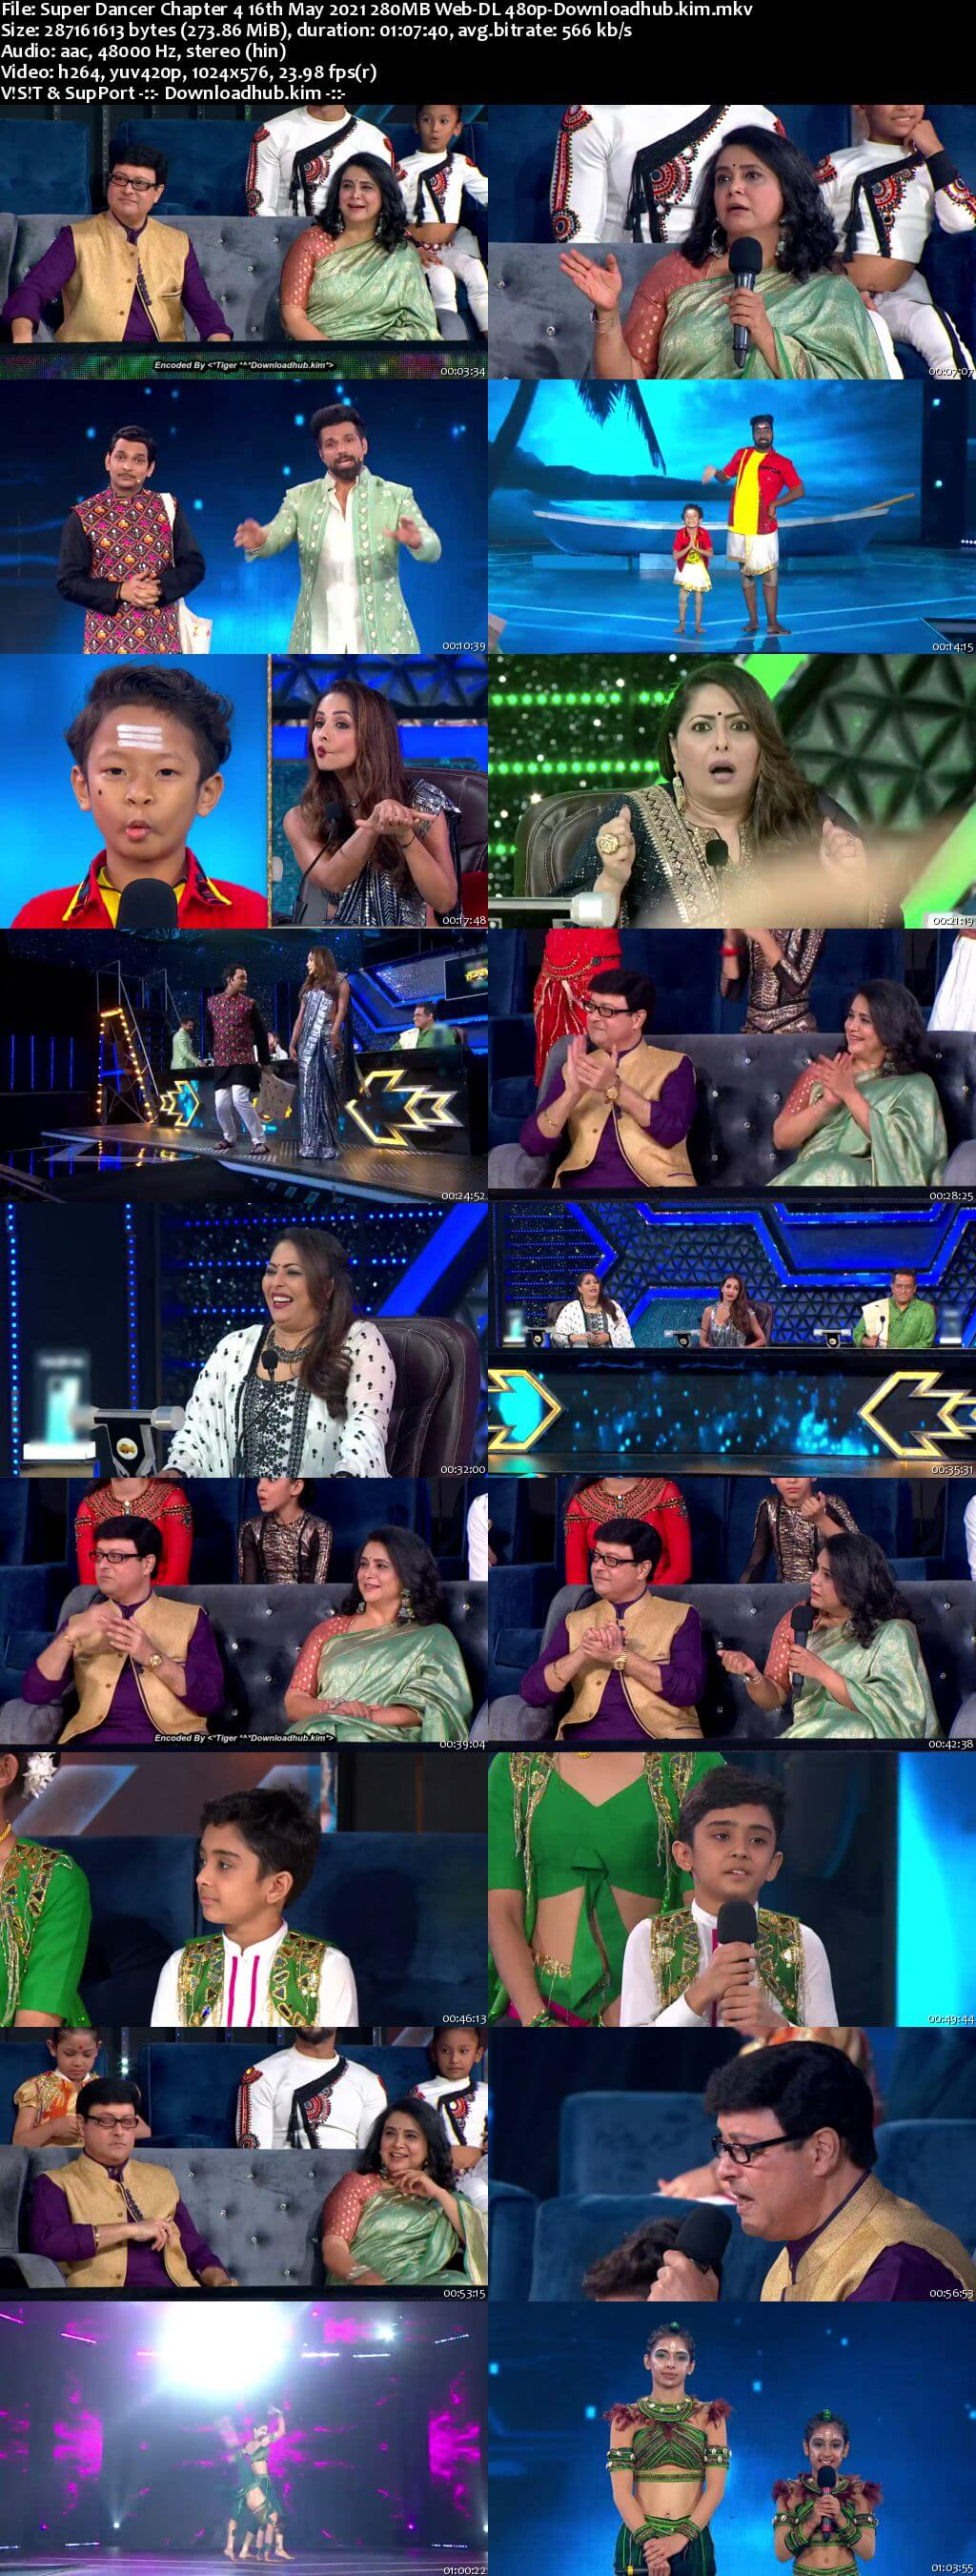 Super Dancer Chapter 4 16th May 2021 280MB Web-DL 480p